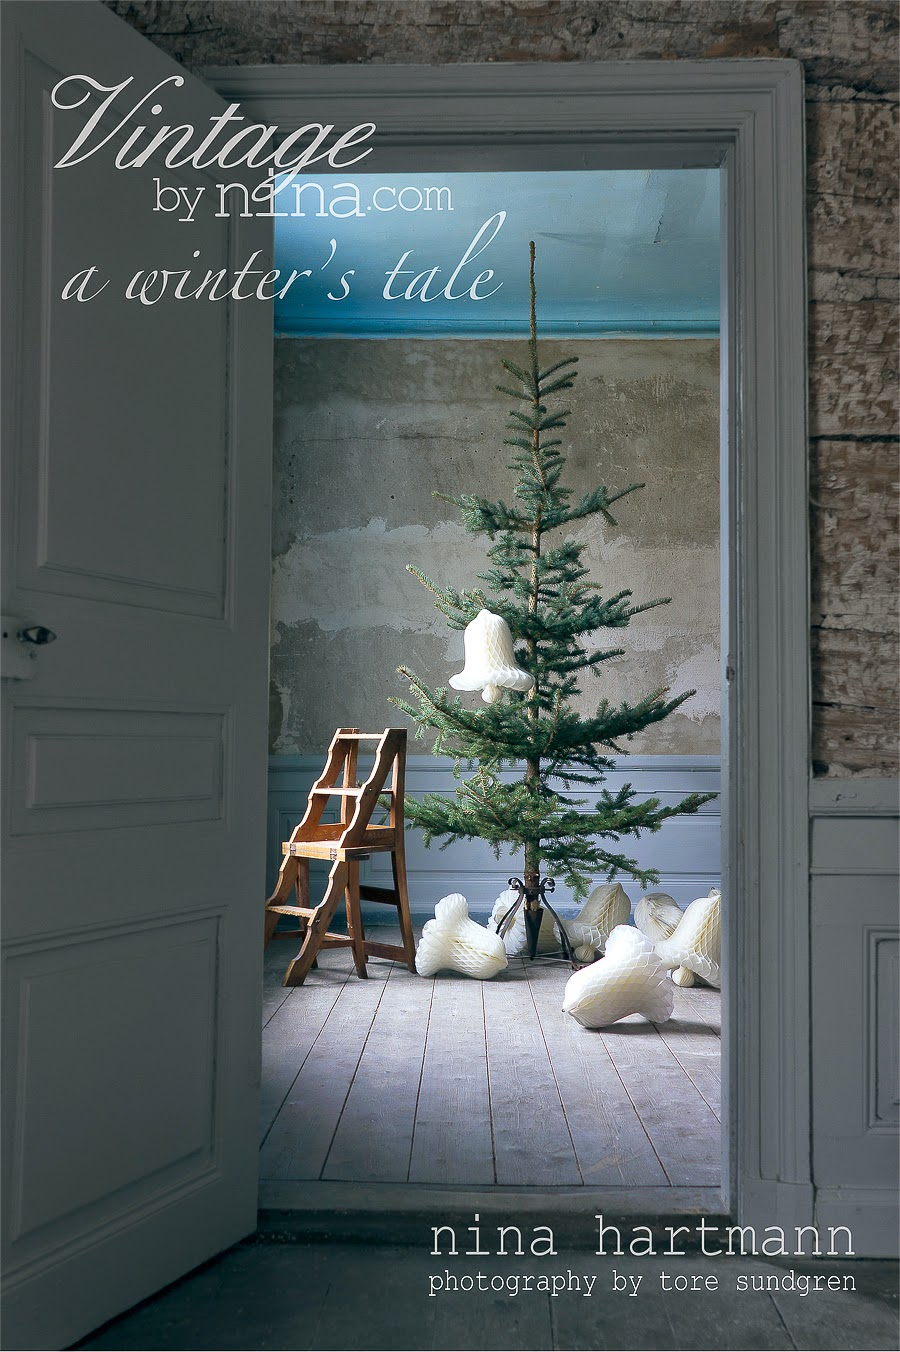 http://www.mypetitemaison.com/item_268/A-Winters-Tale-Book-by-Nina-Hartmann.htm